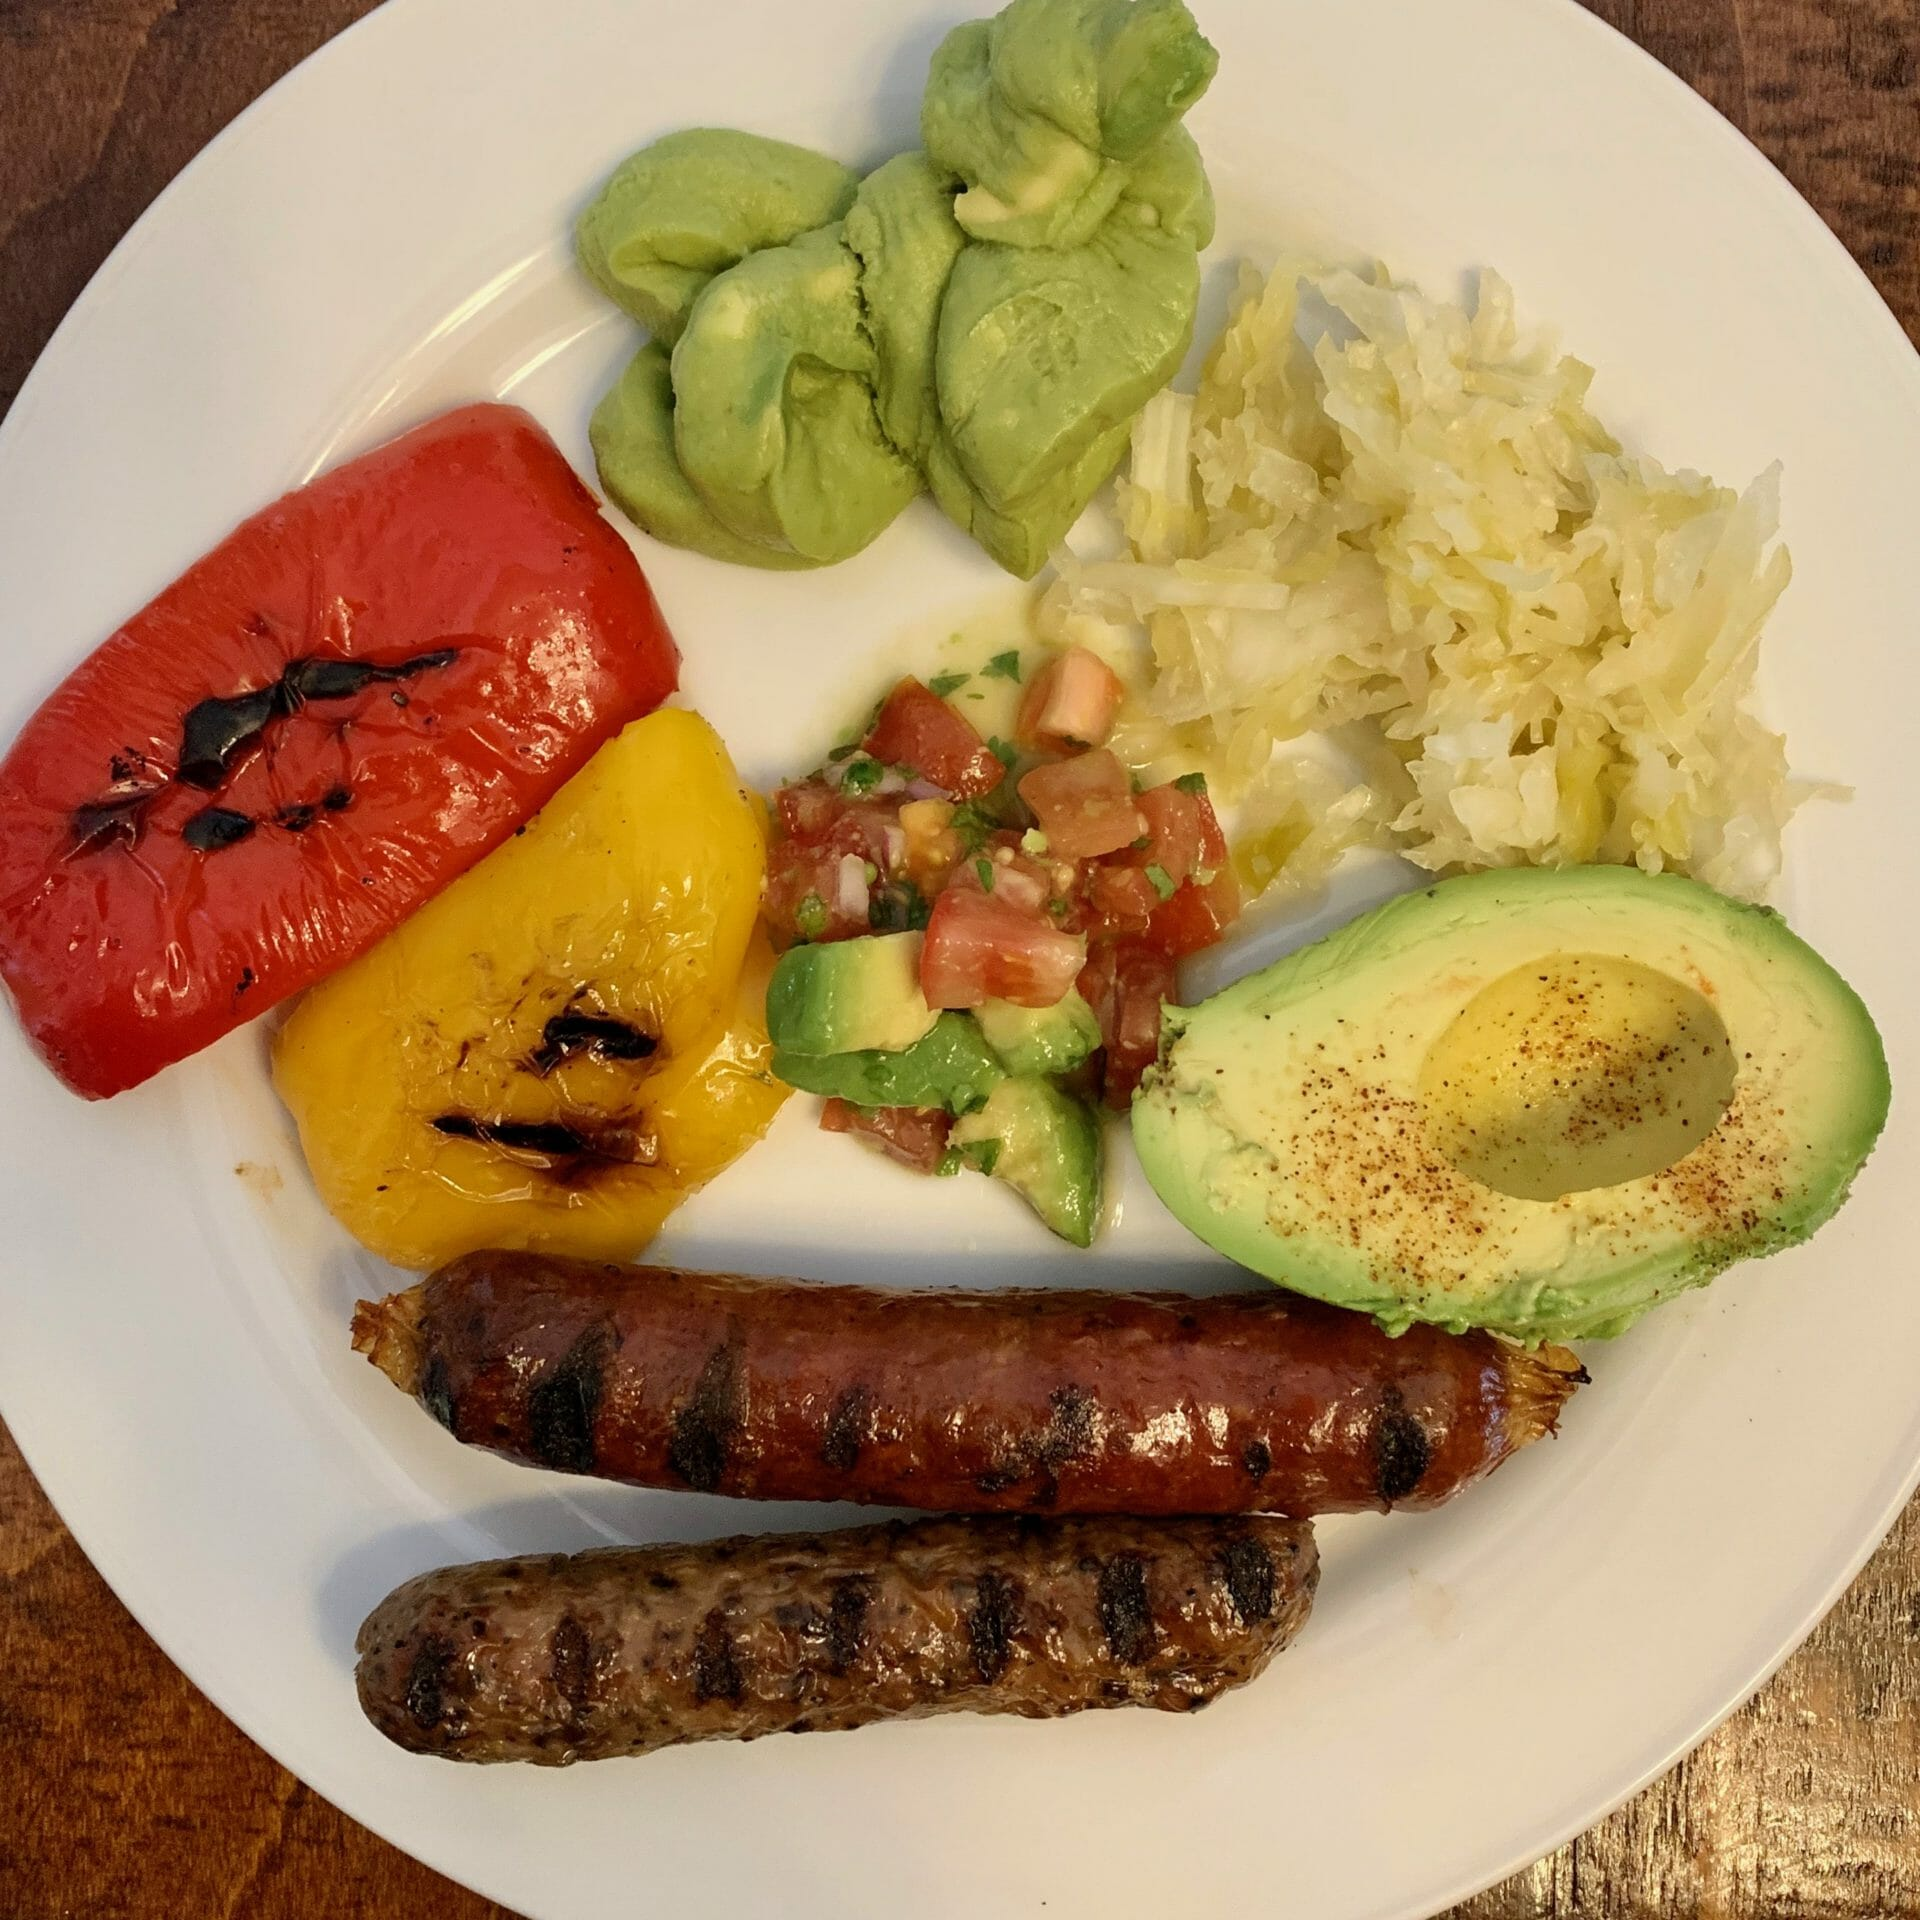 Beef and chicken sausages with grilled peppers, tomato/avocado salad, avocado, guacamole and sauerkraut